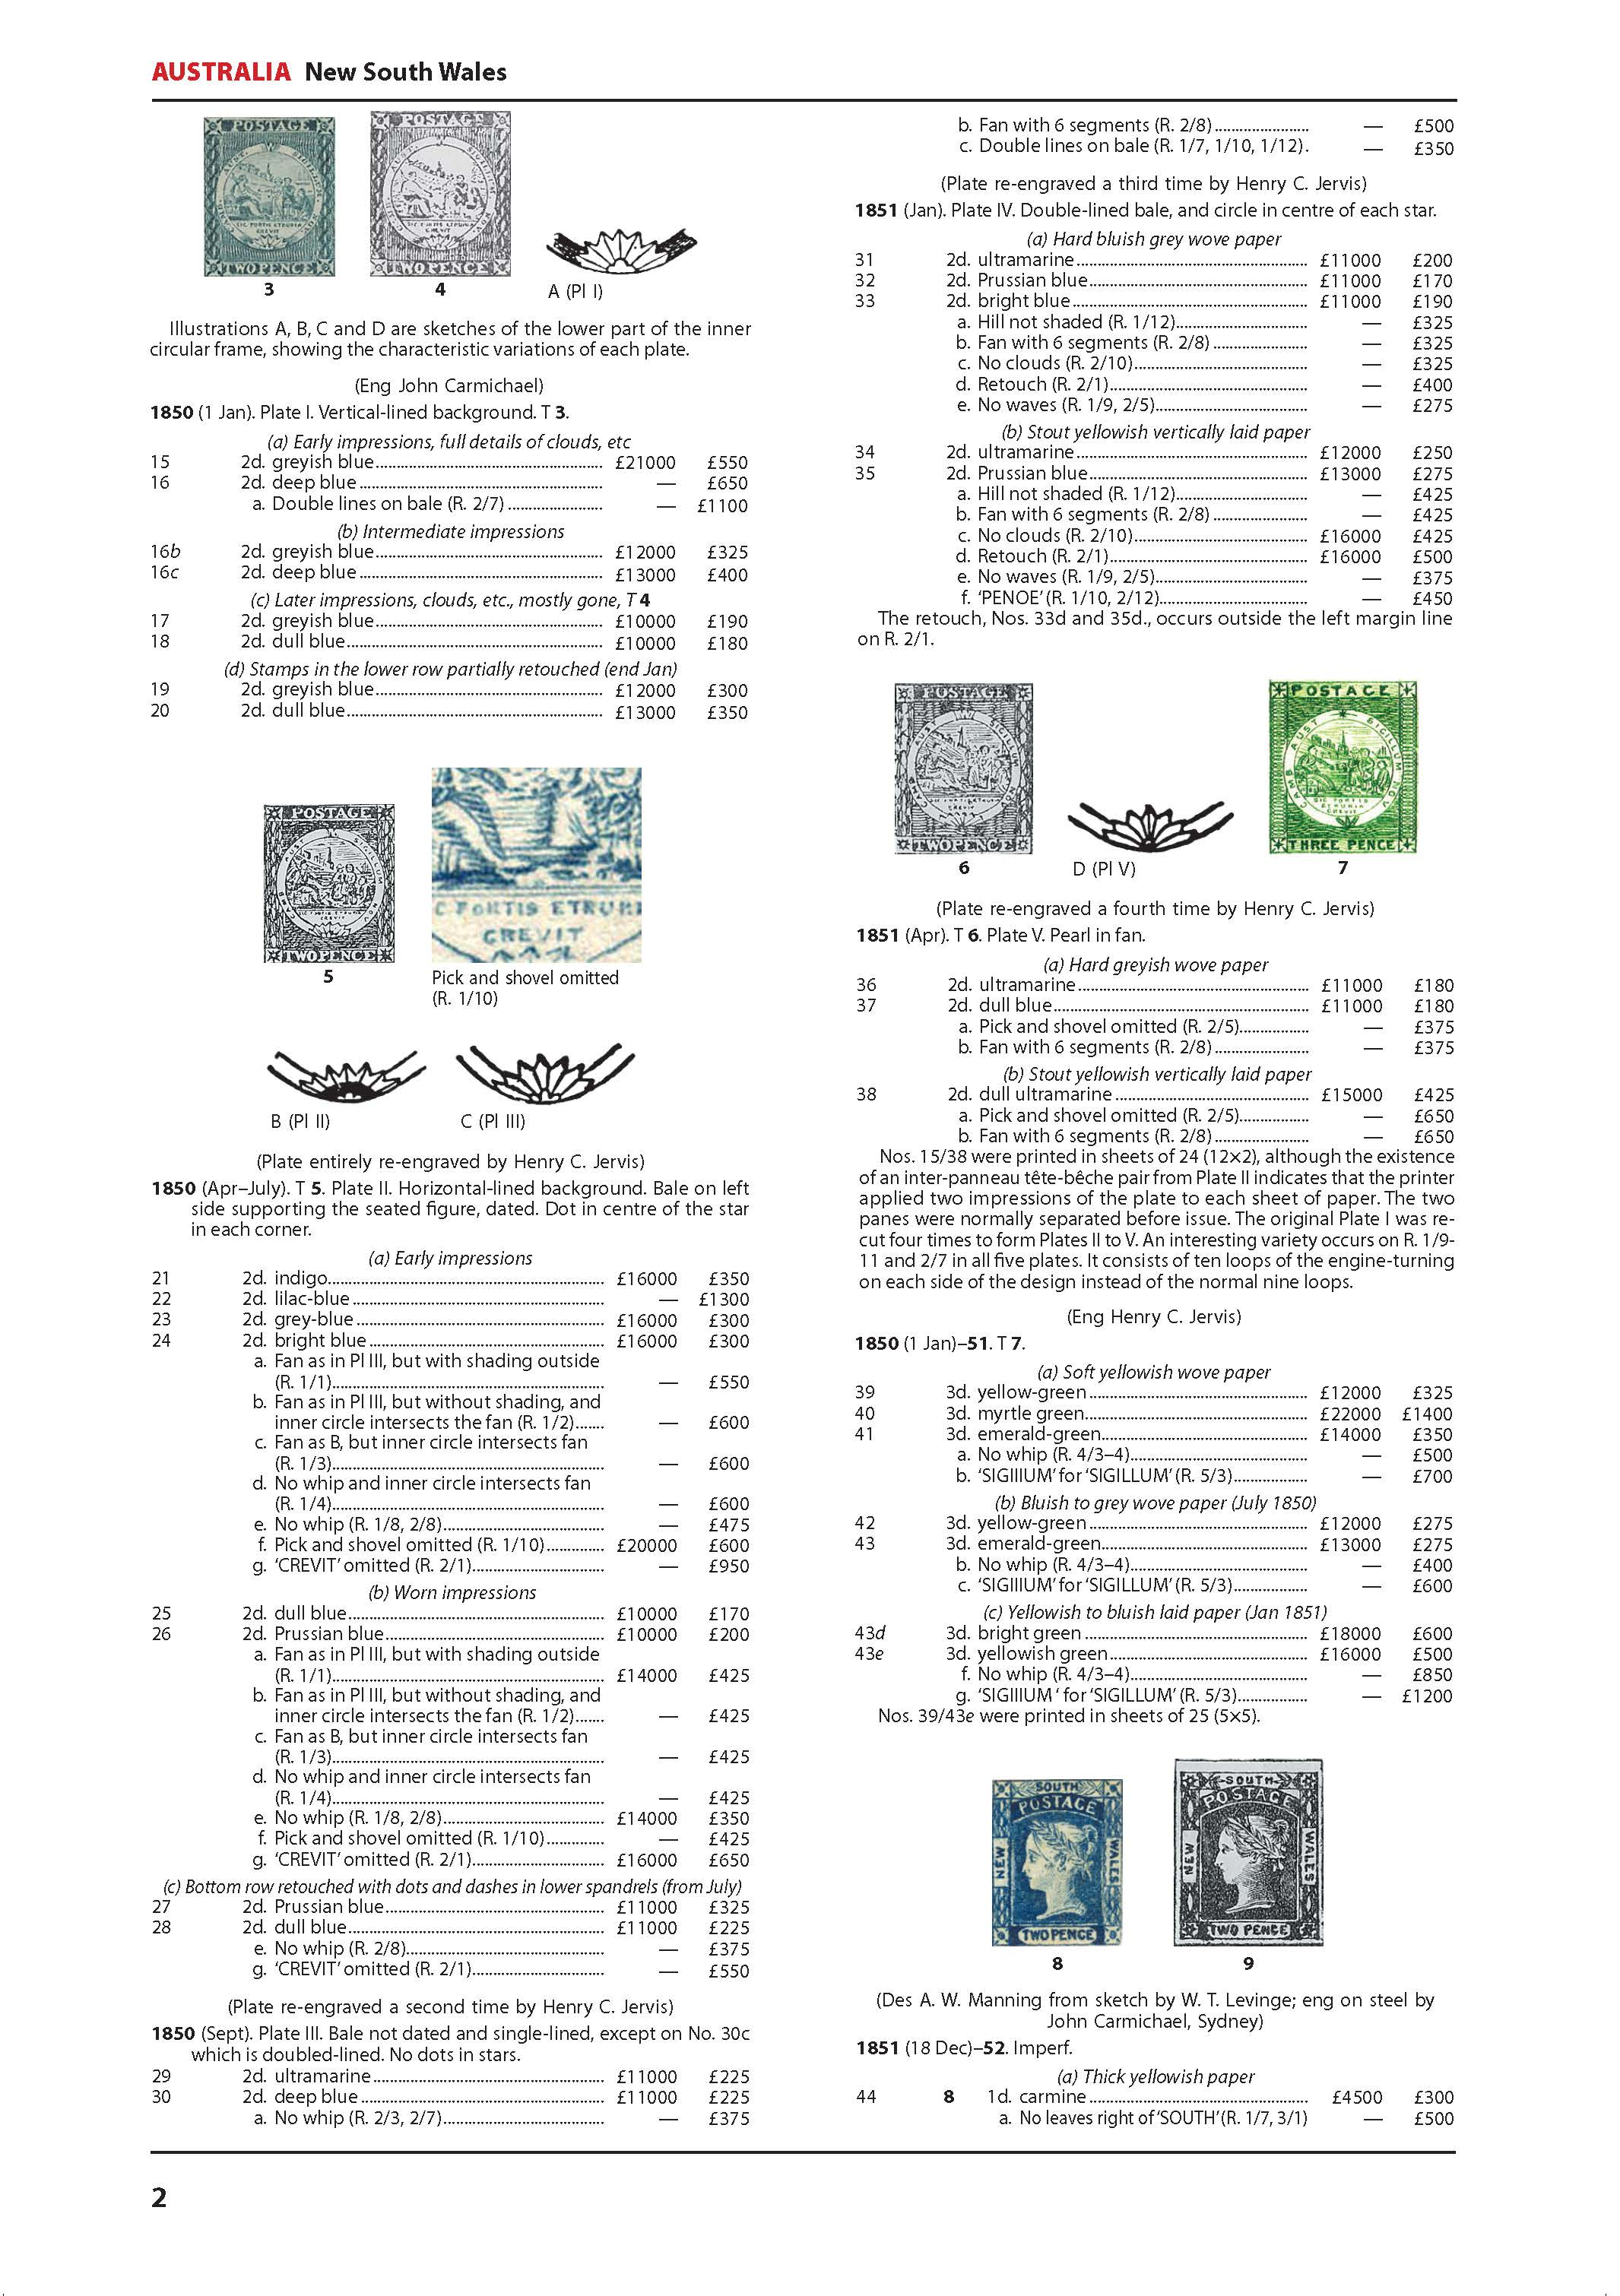 DIGITAL VERSION - Australia Stamp Catalogue 11th Edition